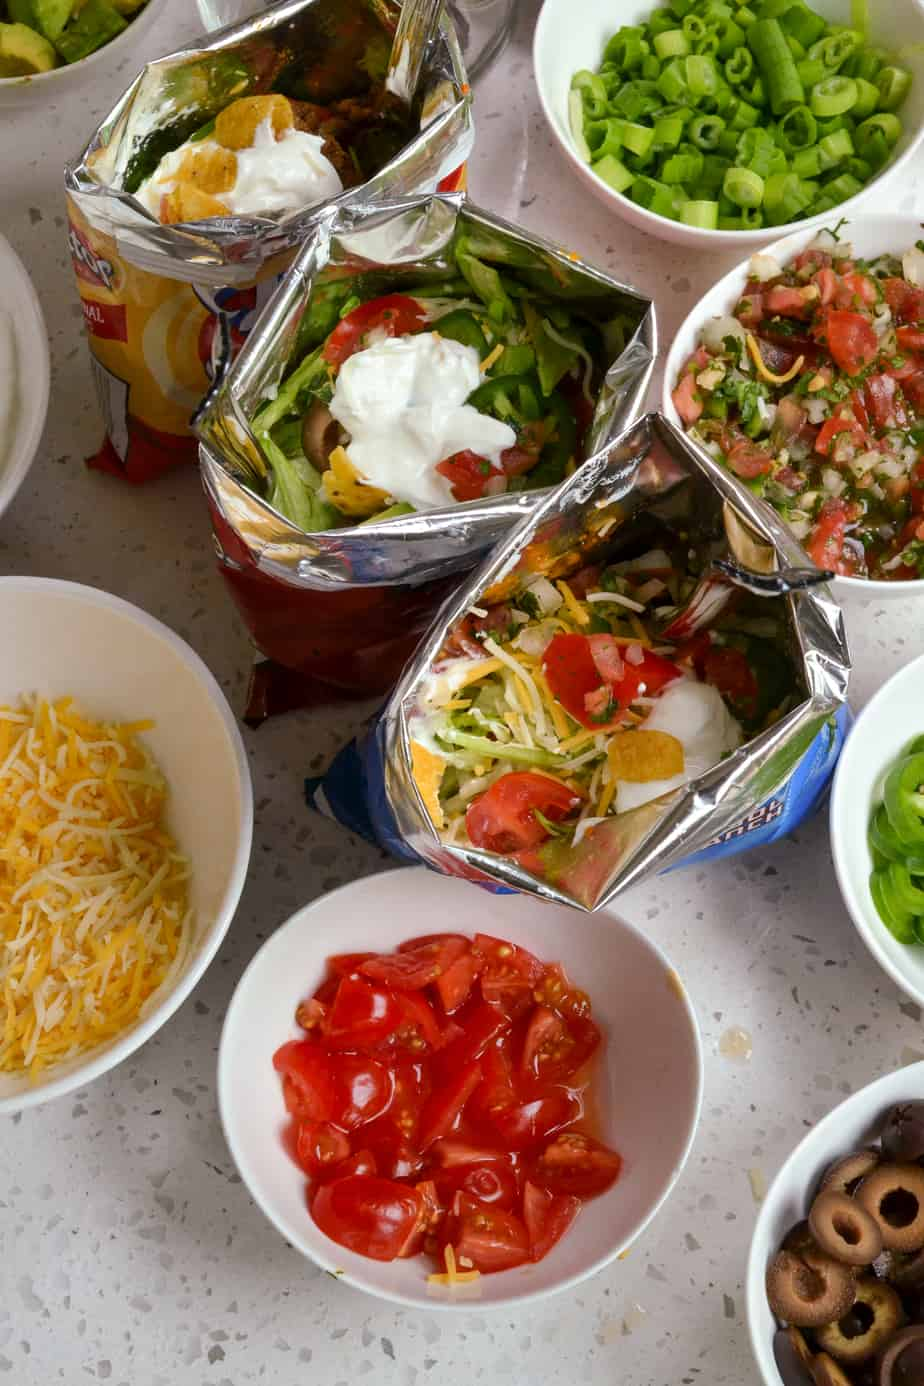 Assorted tacos with different toppings